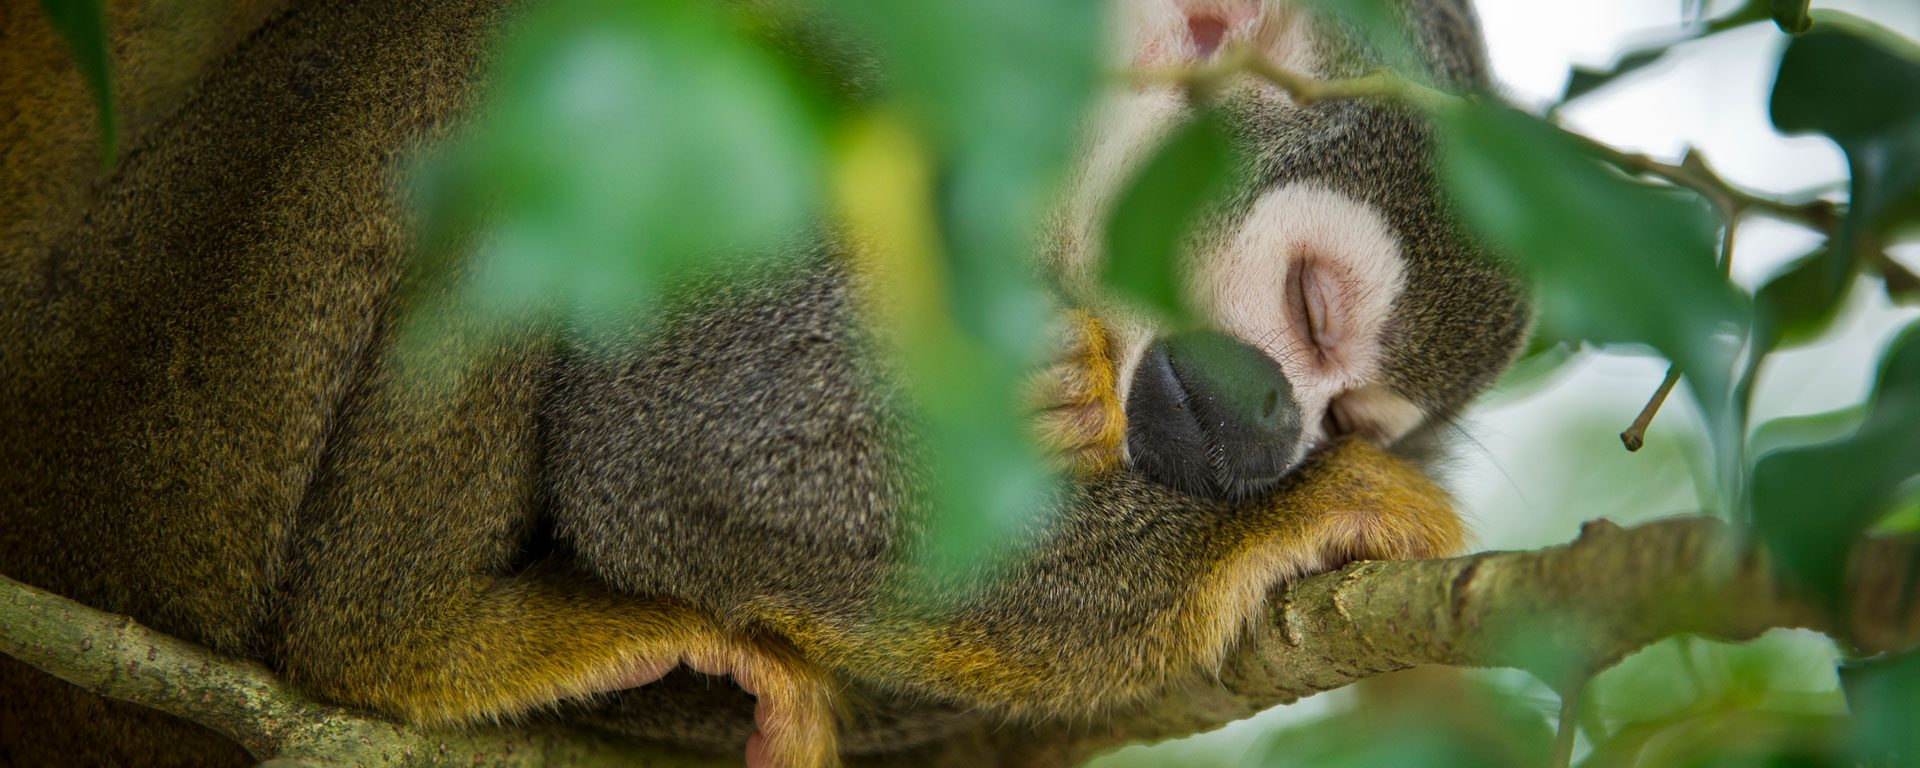 Common squirrel monkey sleeping in tree, Yasuni National Park, Ecuador